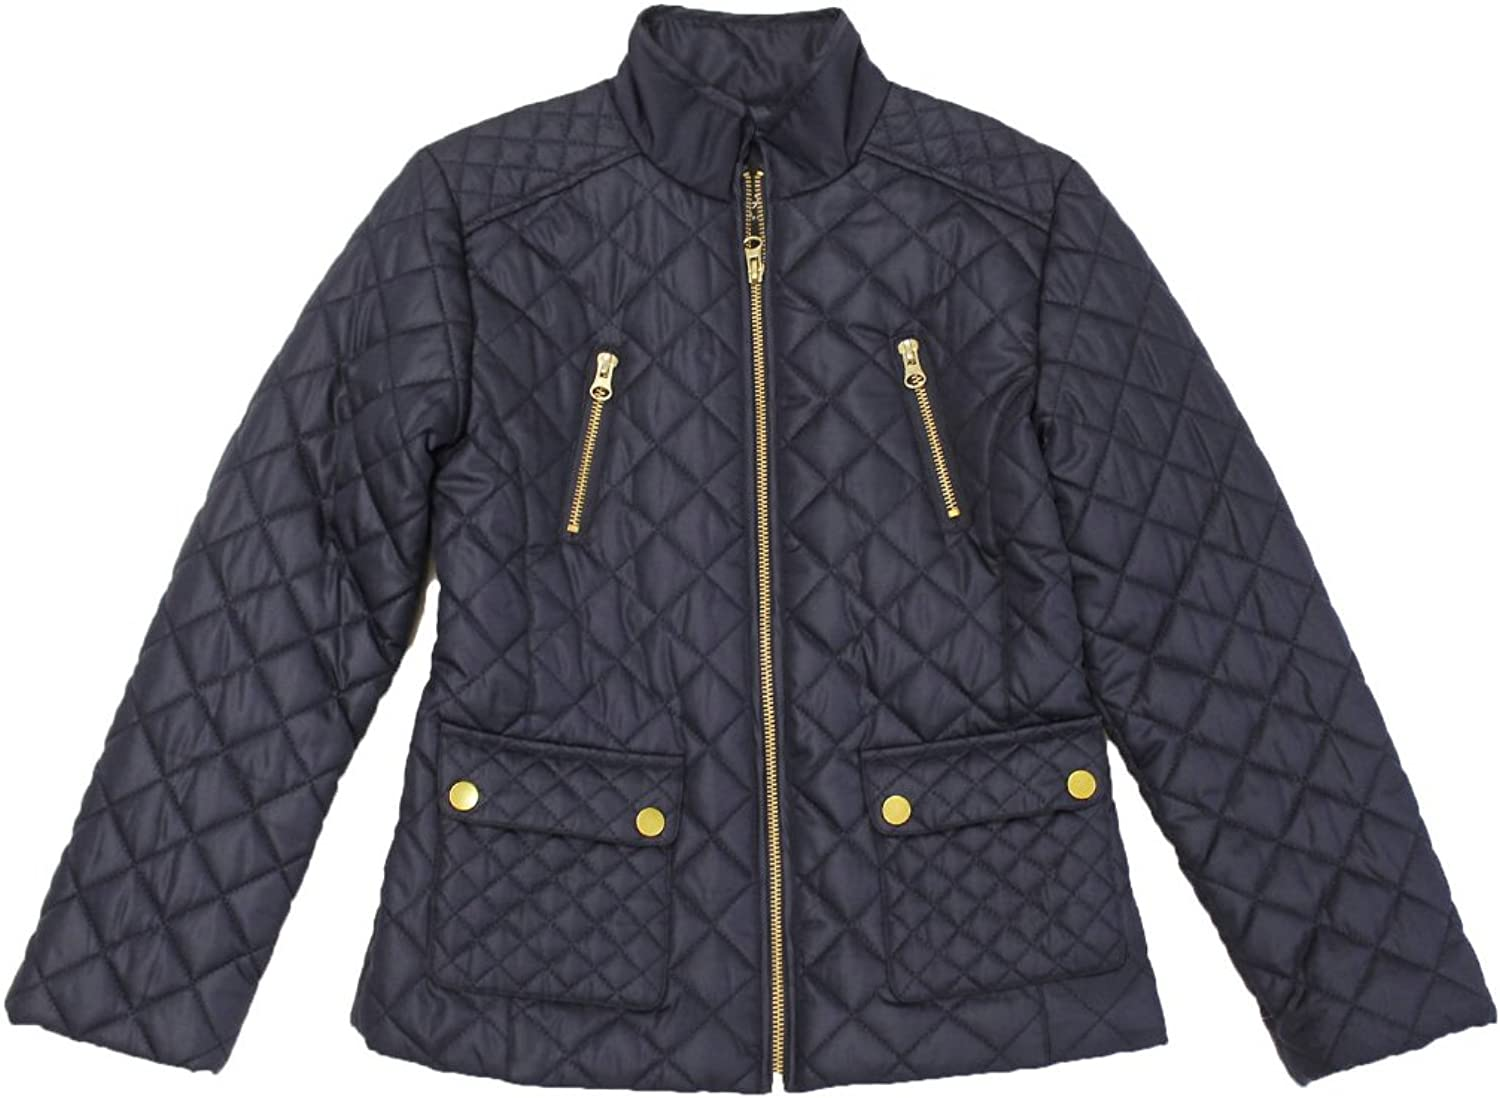 B-Ship Bhip Girls Quilted Zip Front Jackets With Snap Pockets, XS-4//5, Blue